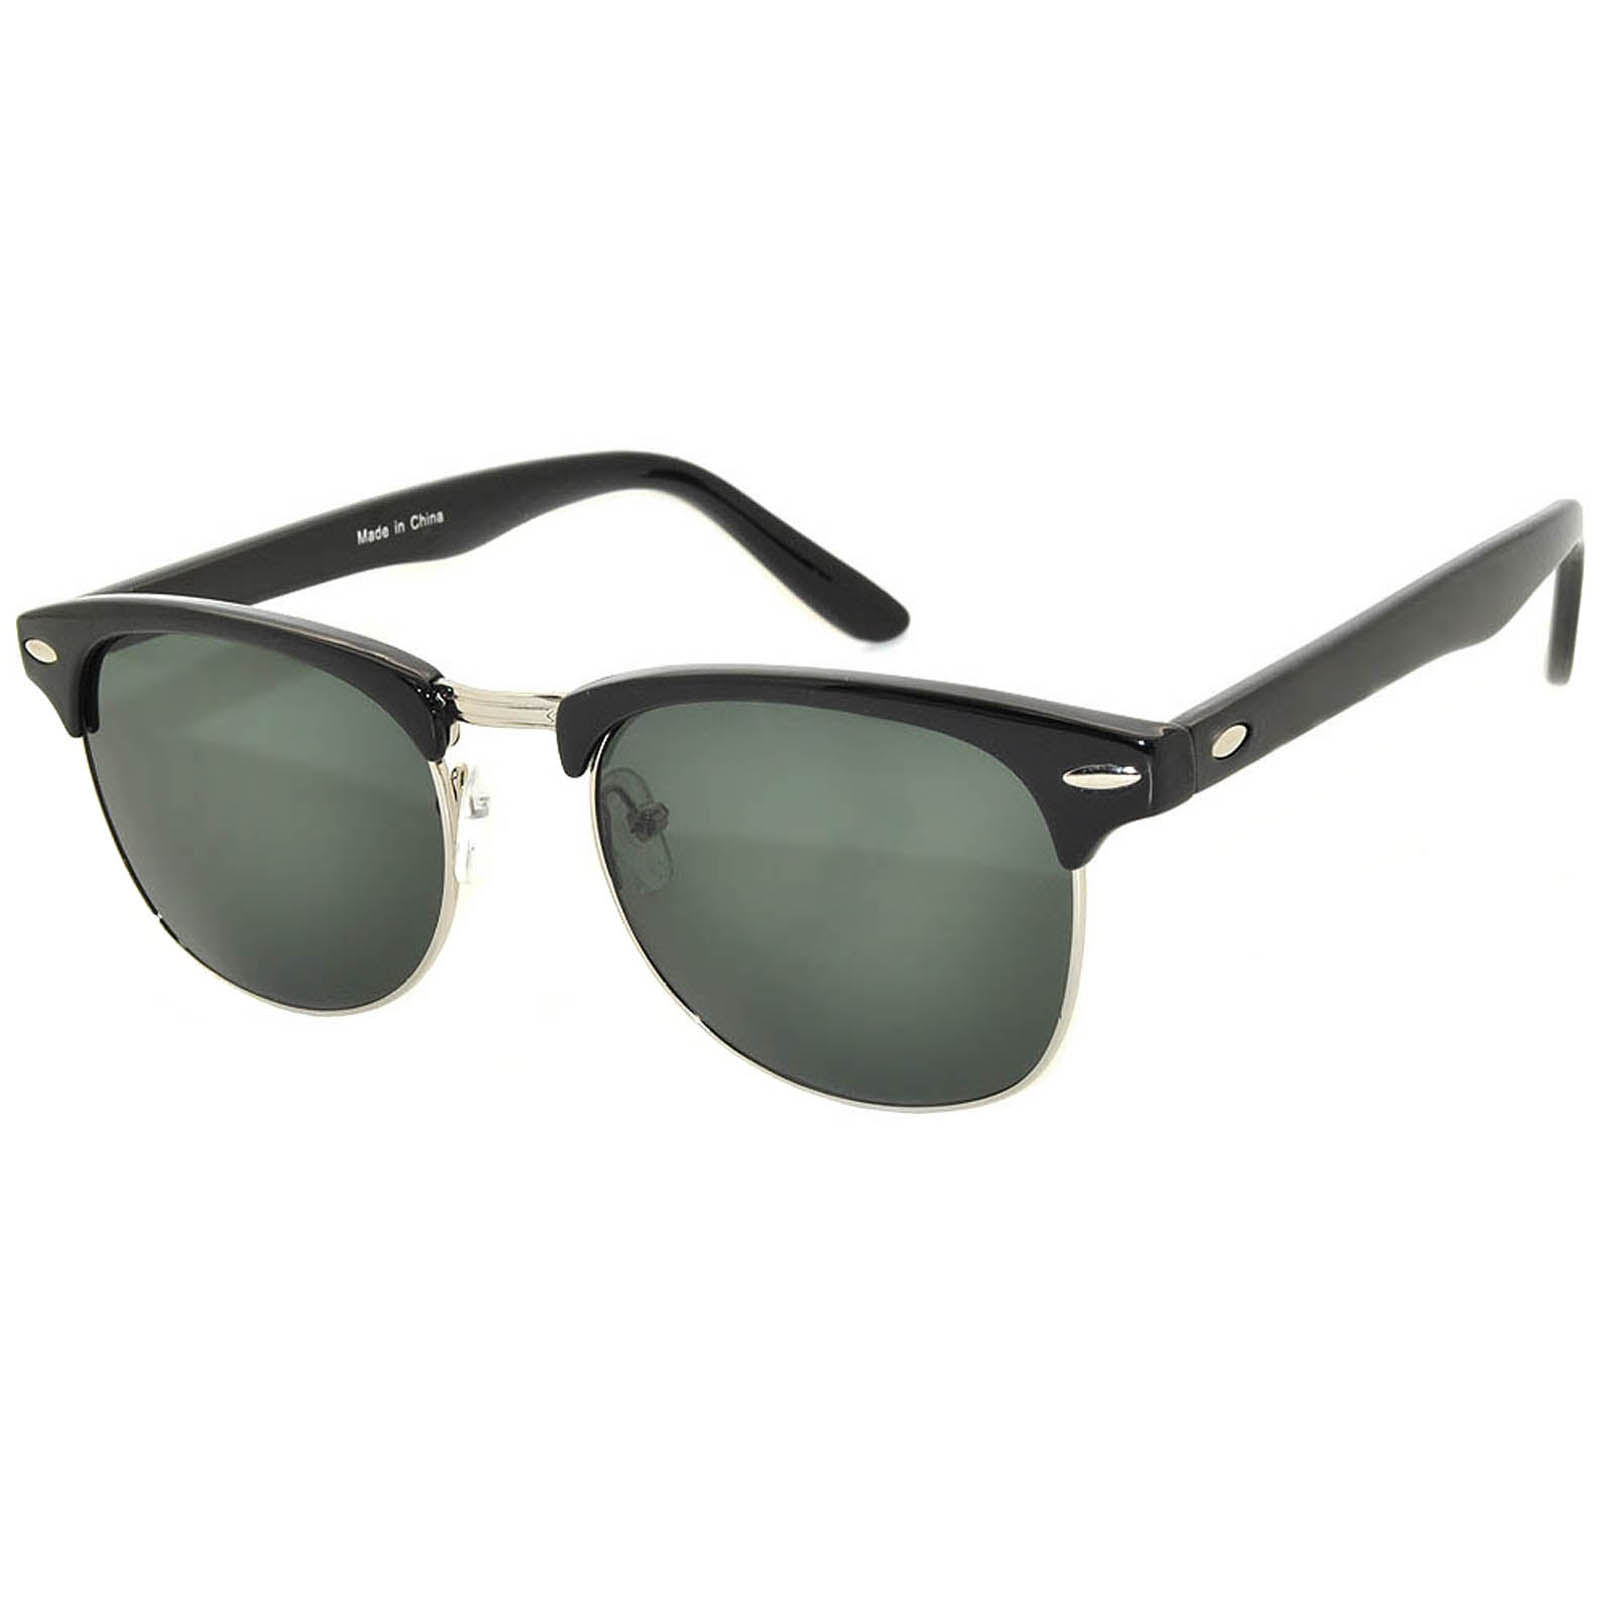 half frame sunglasses wholesale black green lens